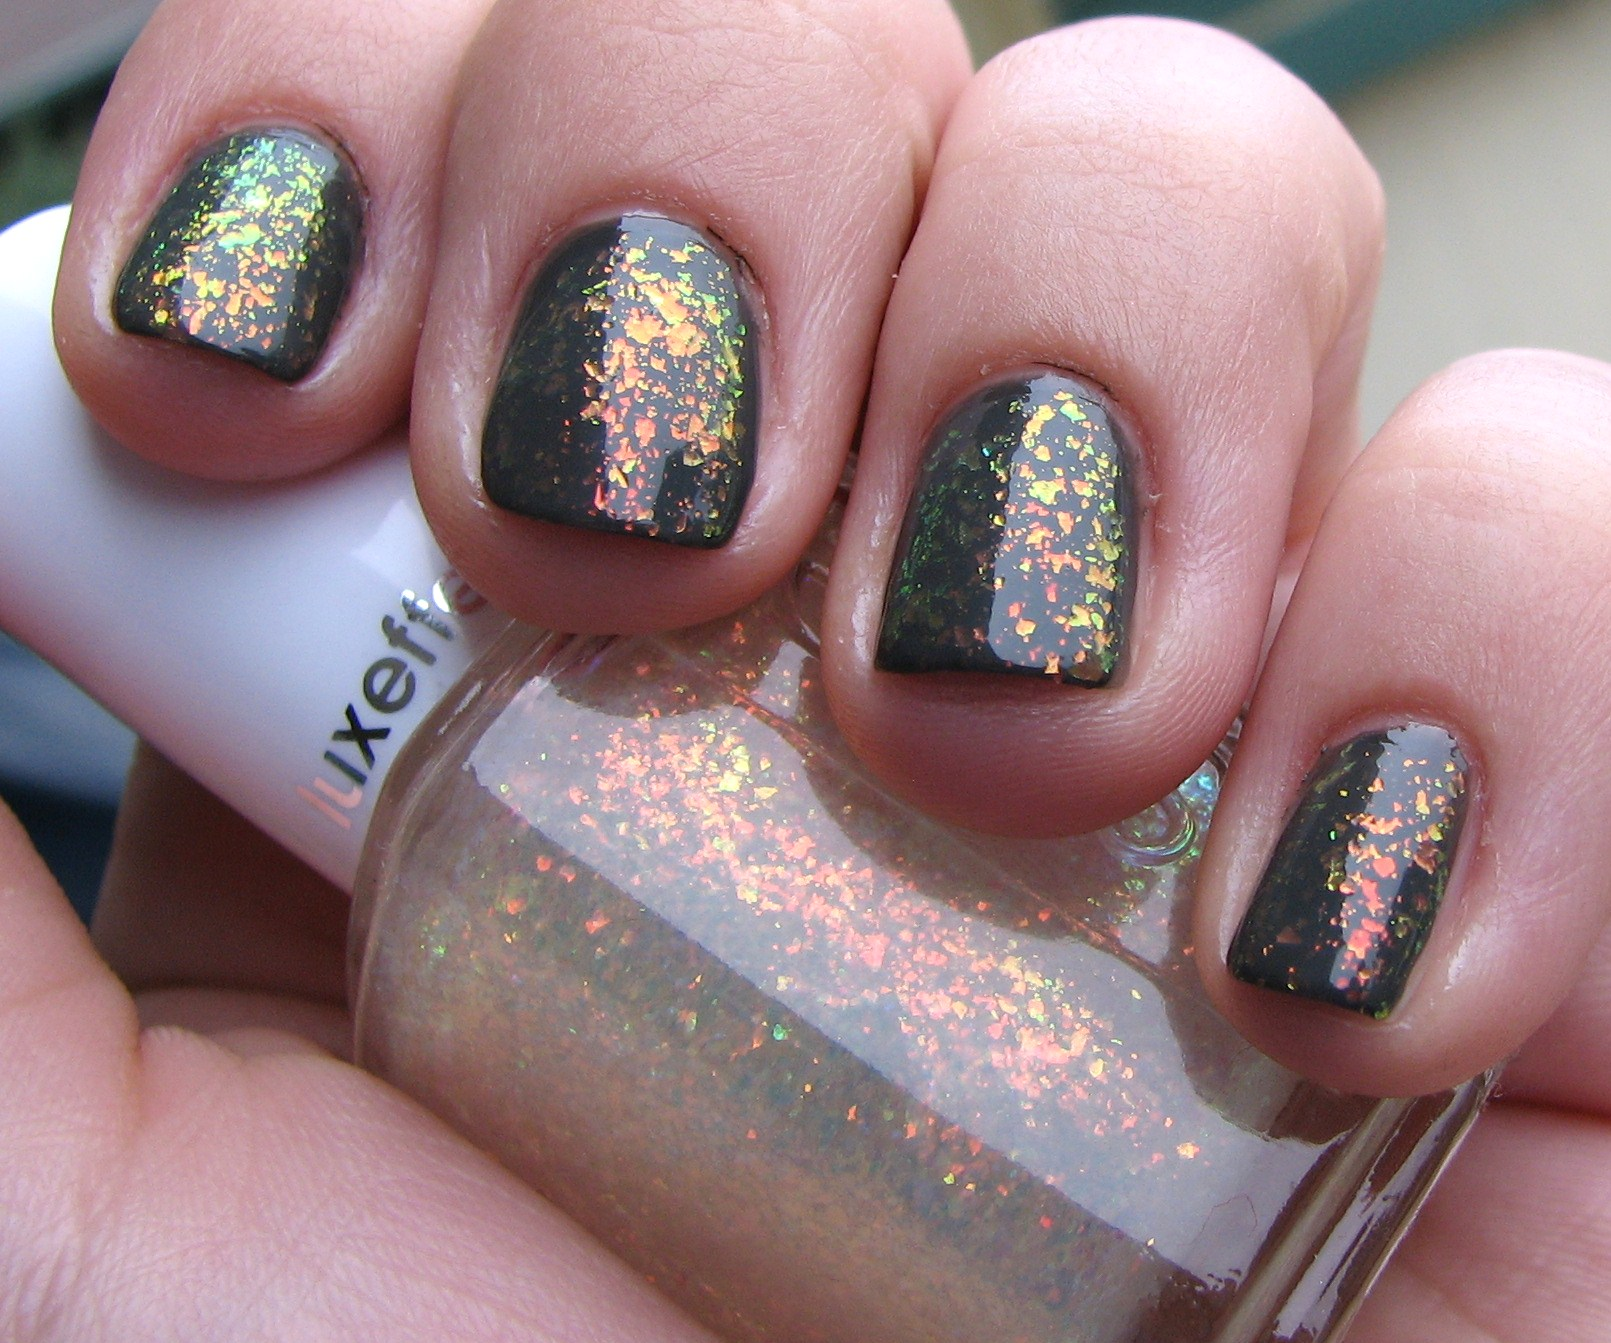 Essie SHINE OF THE TIMES Luxeffects Nail Polish Swatches